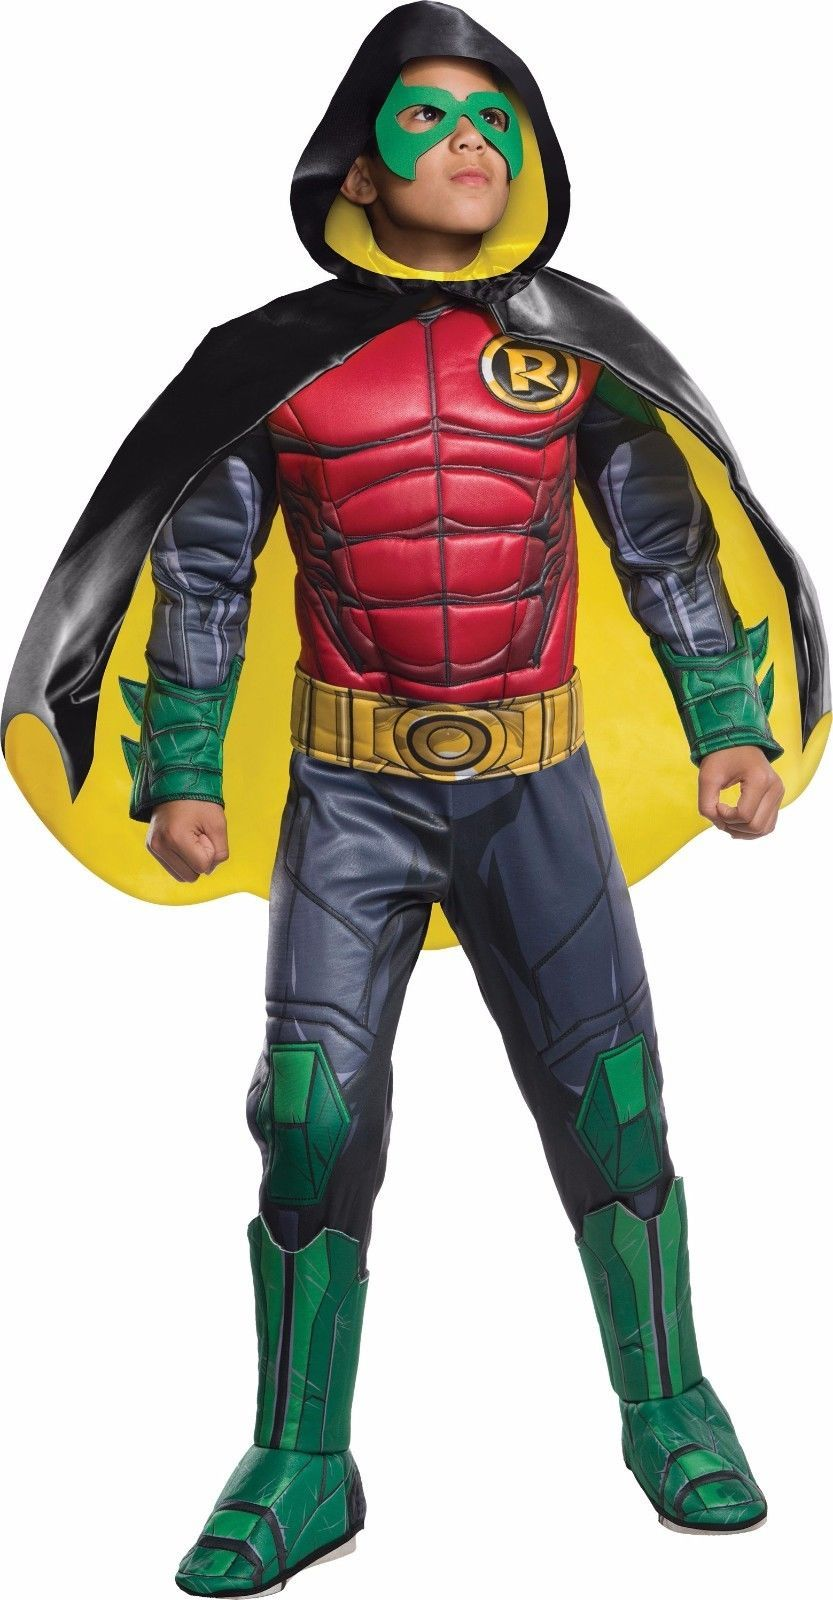 Rubies Premium Robin DC Comics Gotham City Childs Boys Halloween Costume 620101